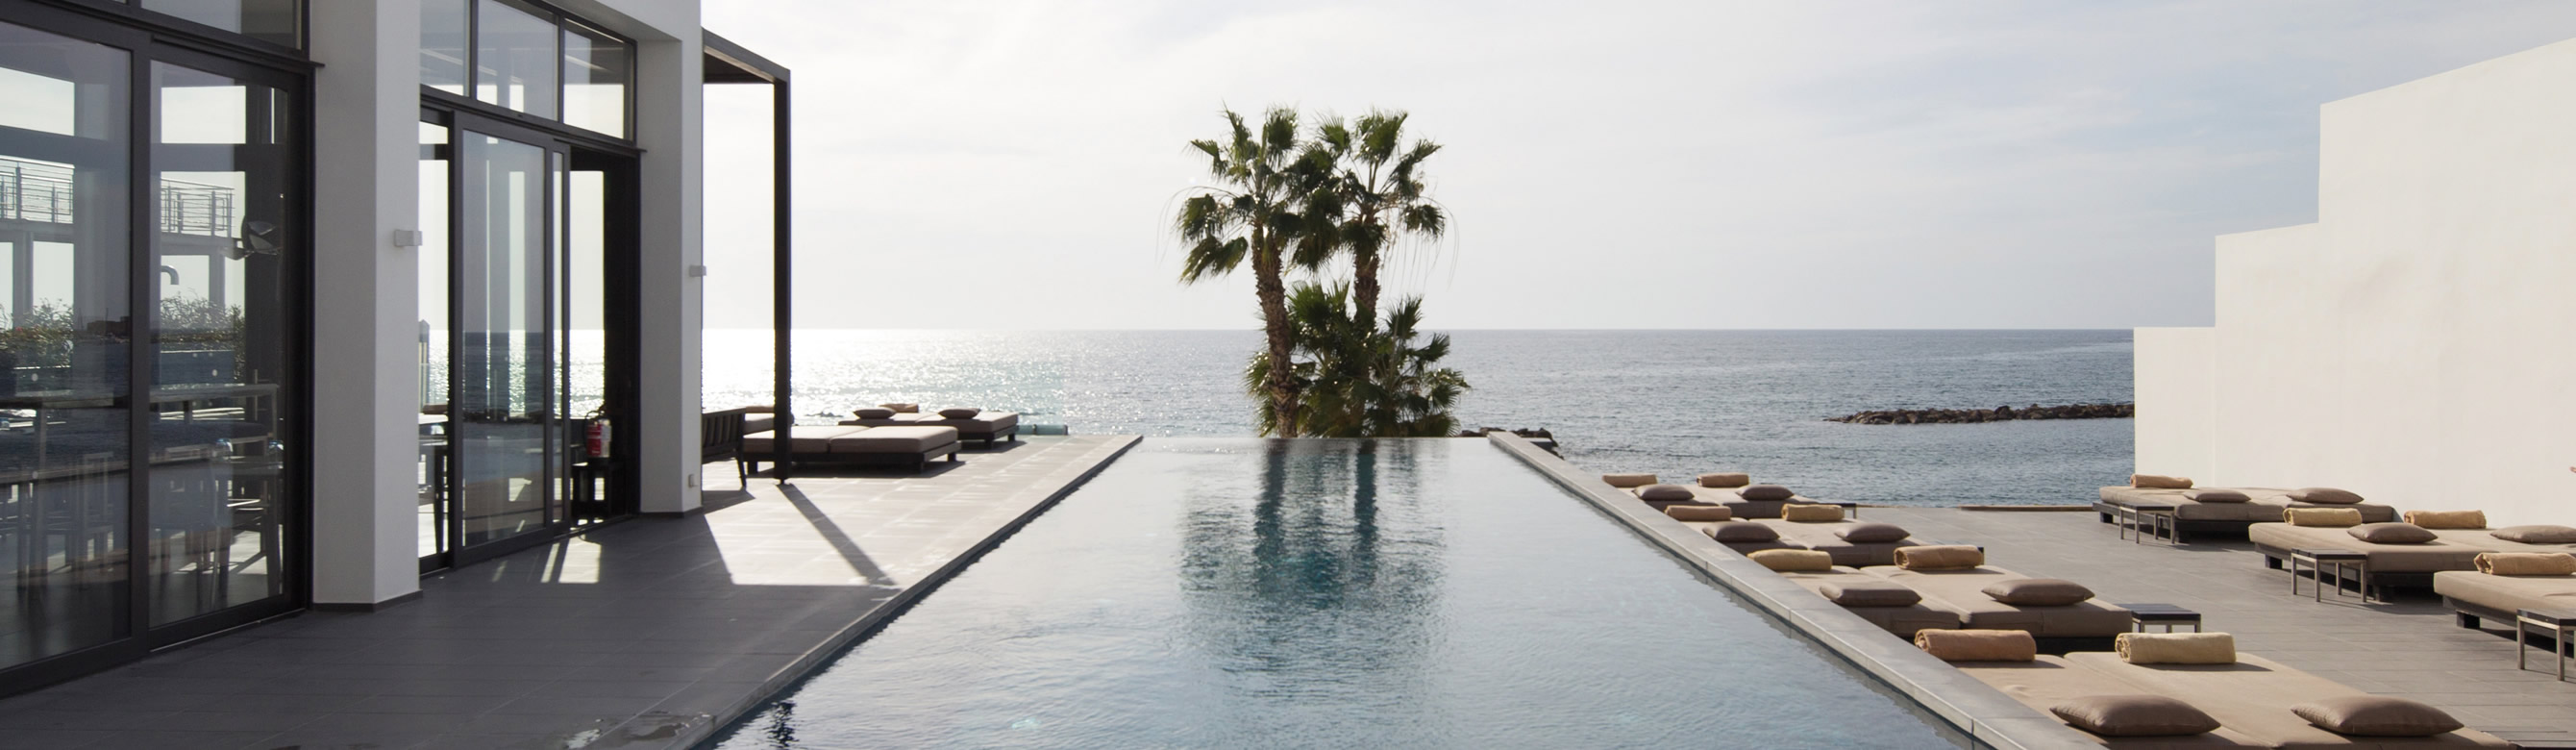 almyraspa_outdoor_pool_sea_view.jpg